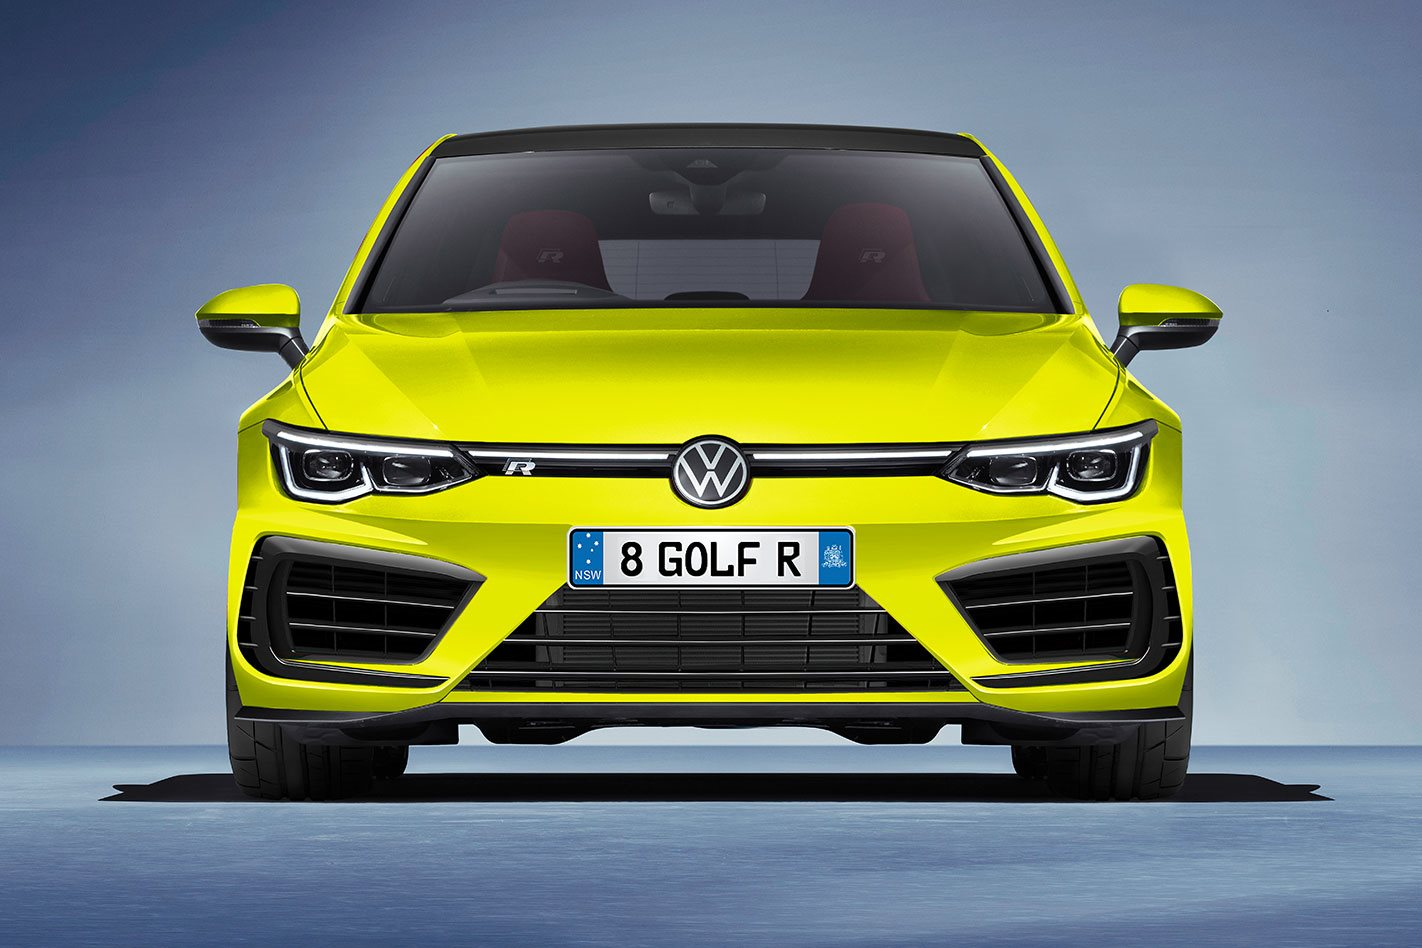 German giant Volkswagen is building a weapon to take on AMG A45 as hot hatch turf war heats up